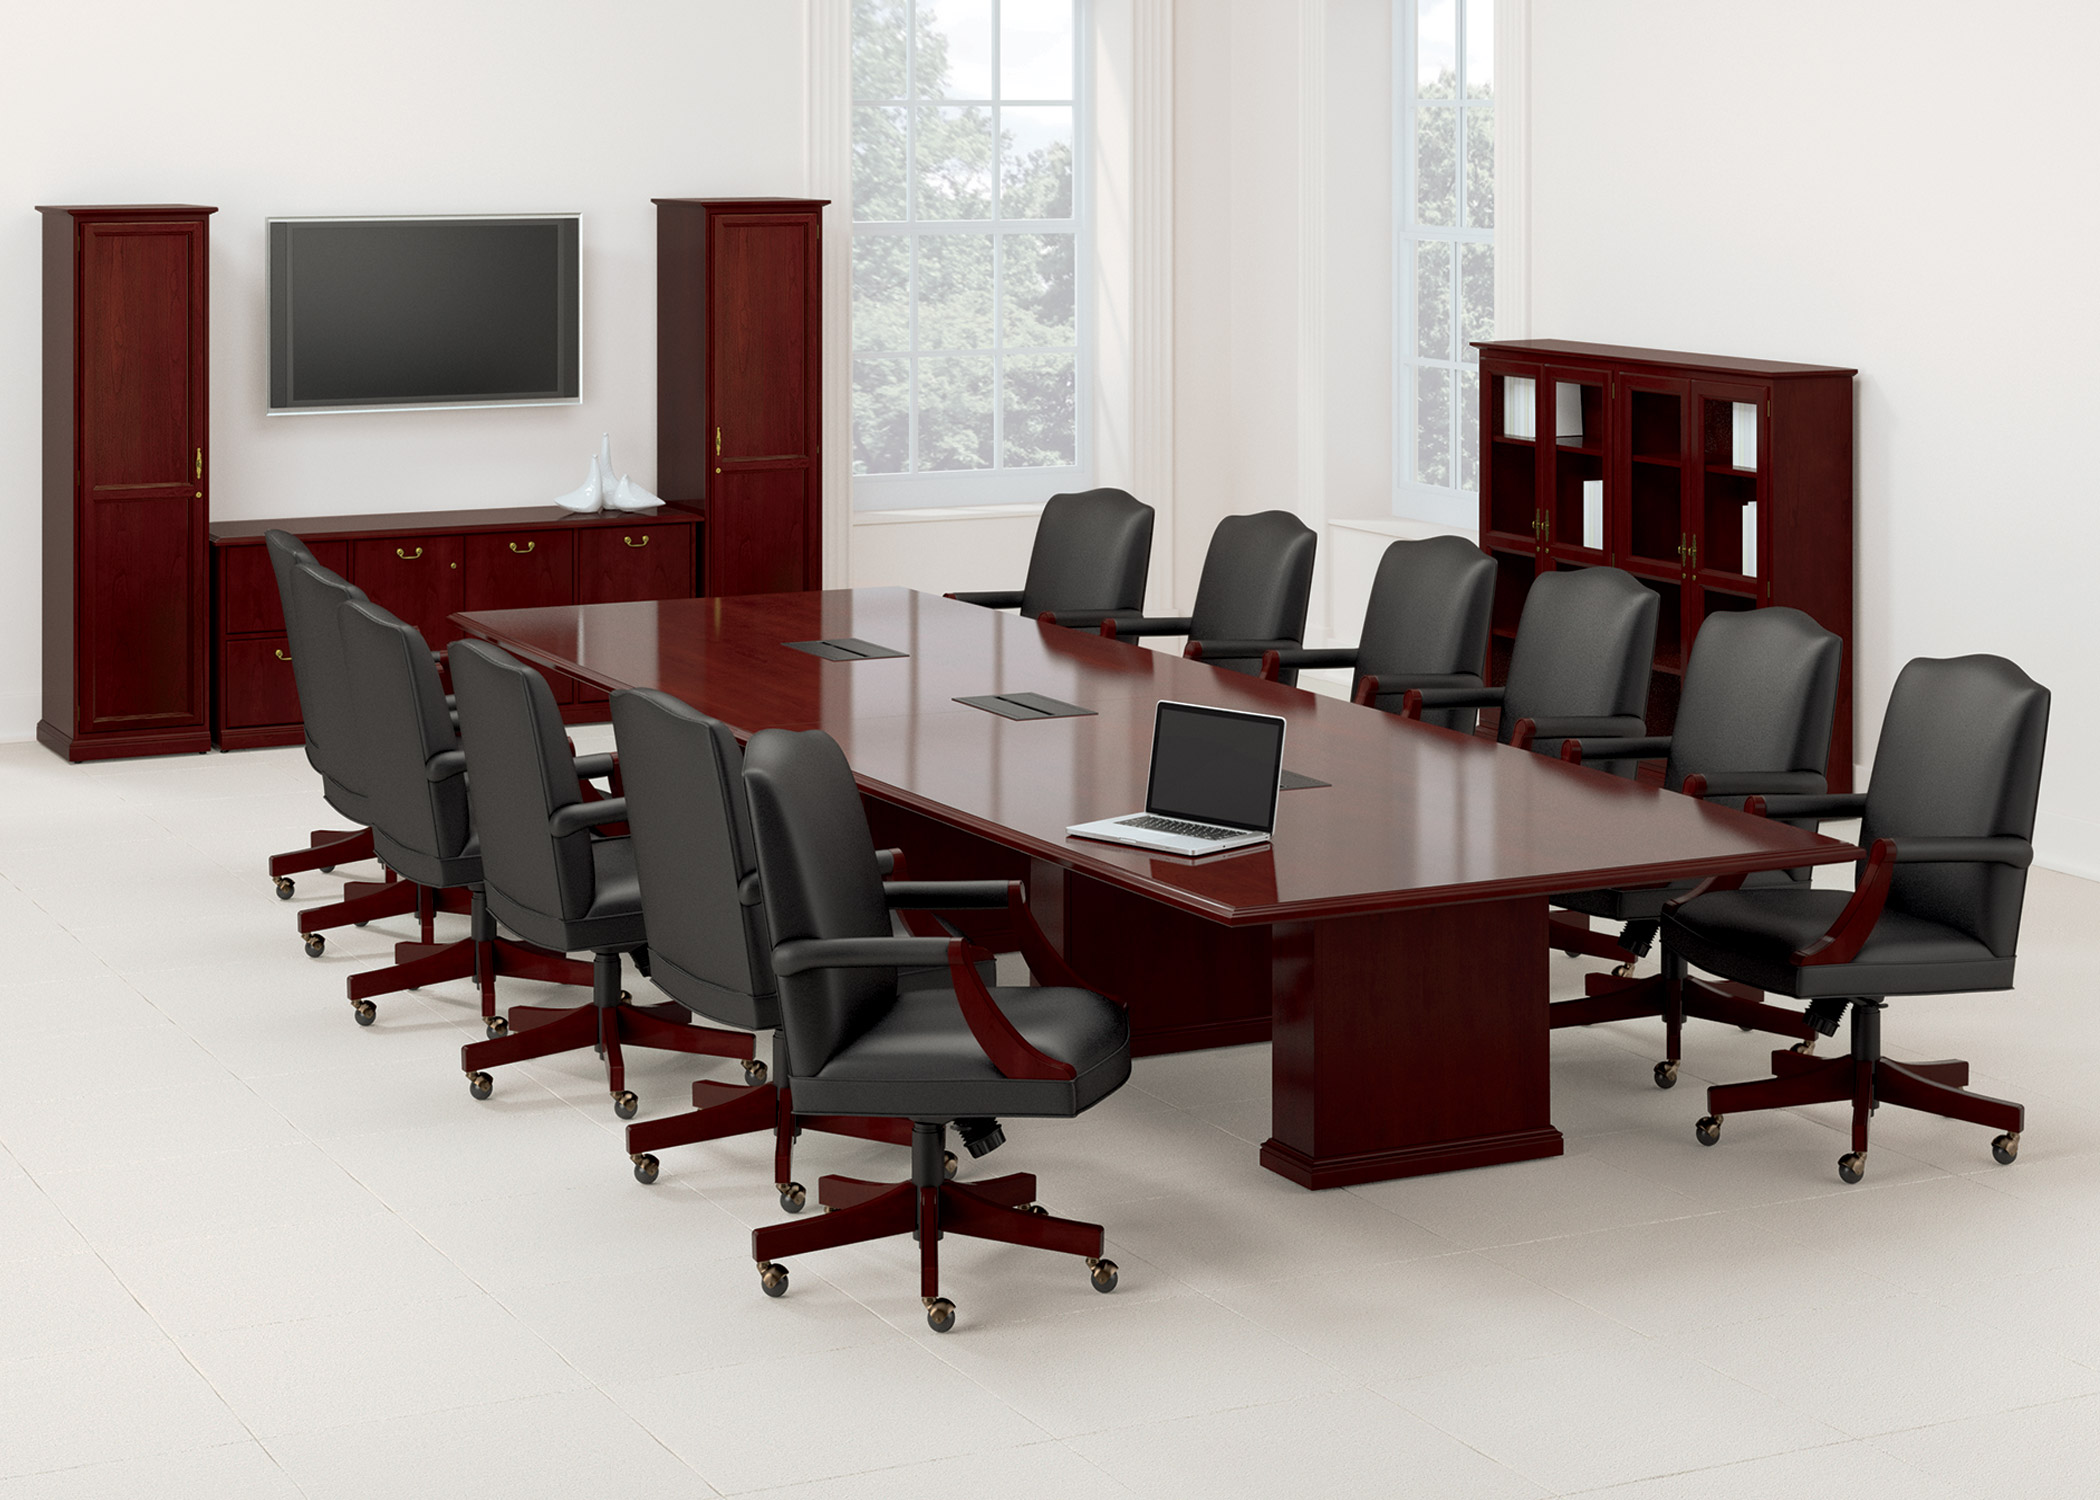 Conference Room Tables Styles To Choose From Ubiq - Round conference table for 10